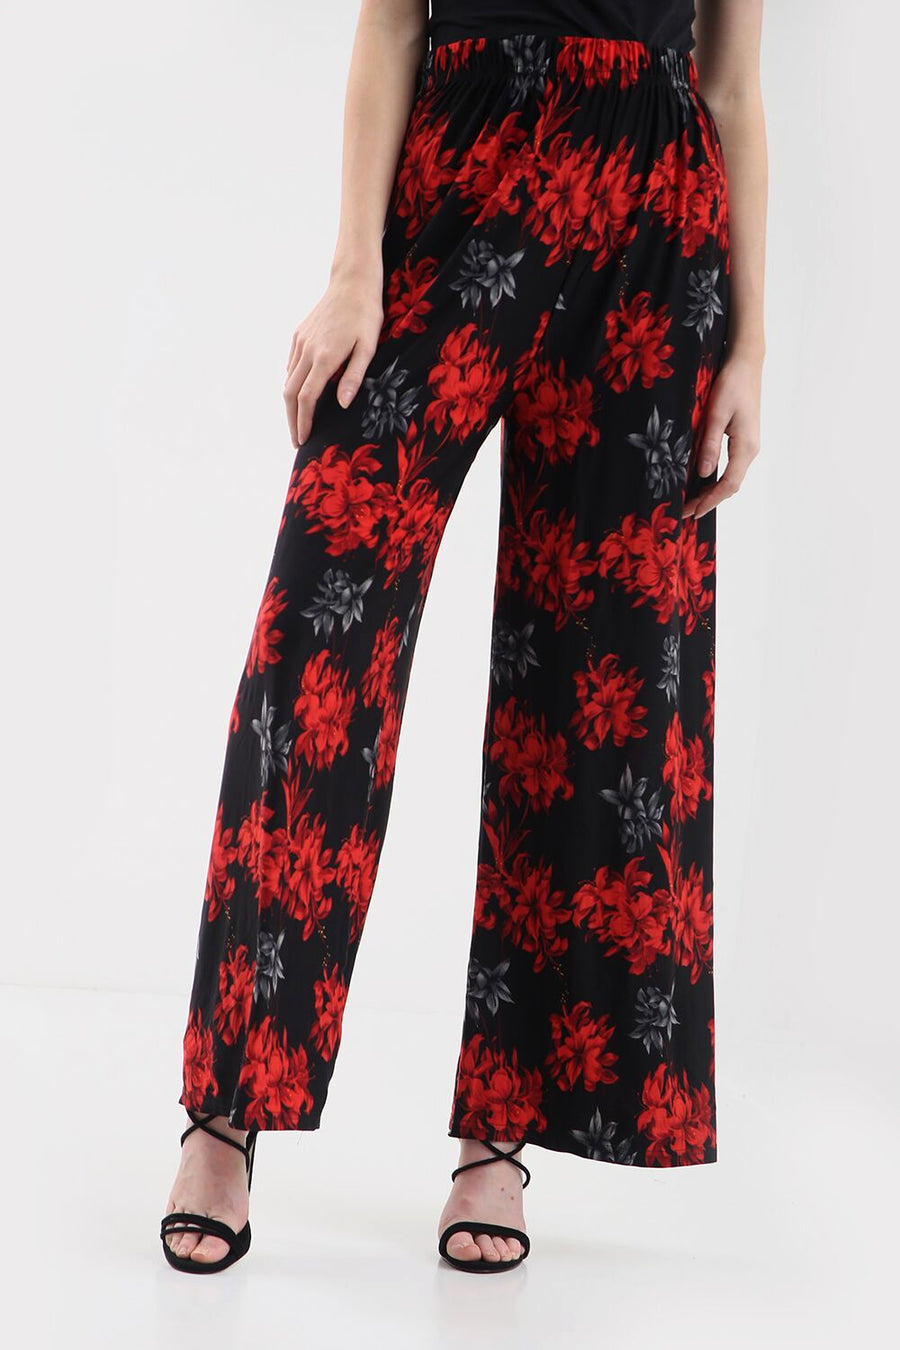 High Waist Red Floral Wide Leg Trousers - bejealous-com